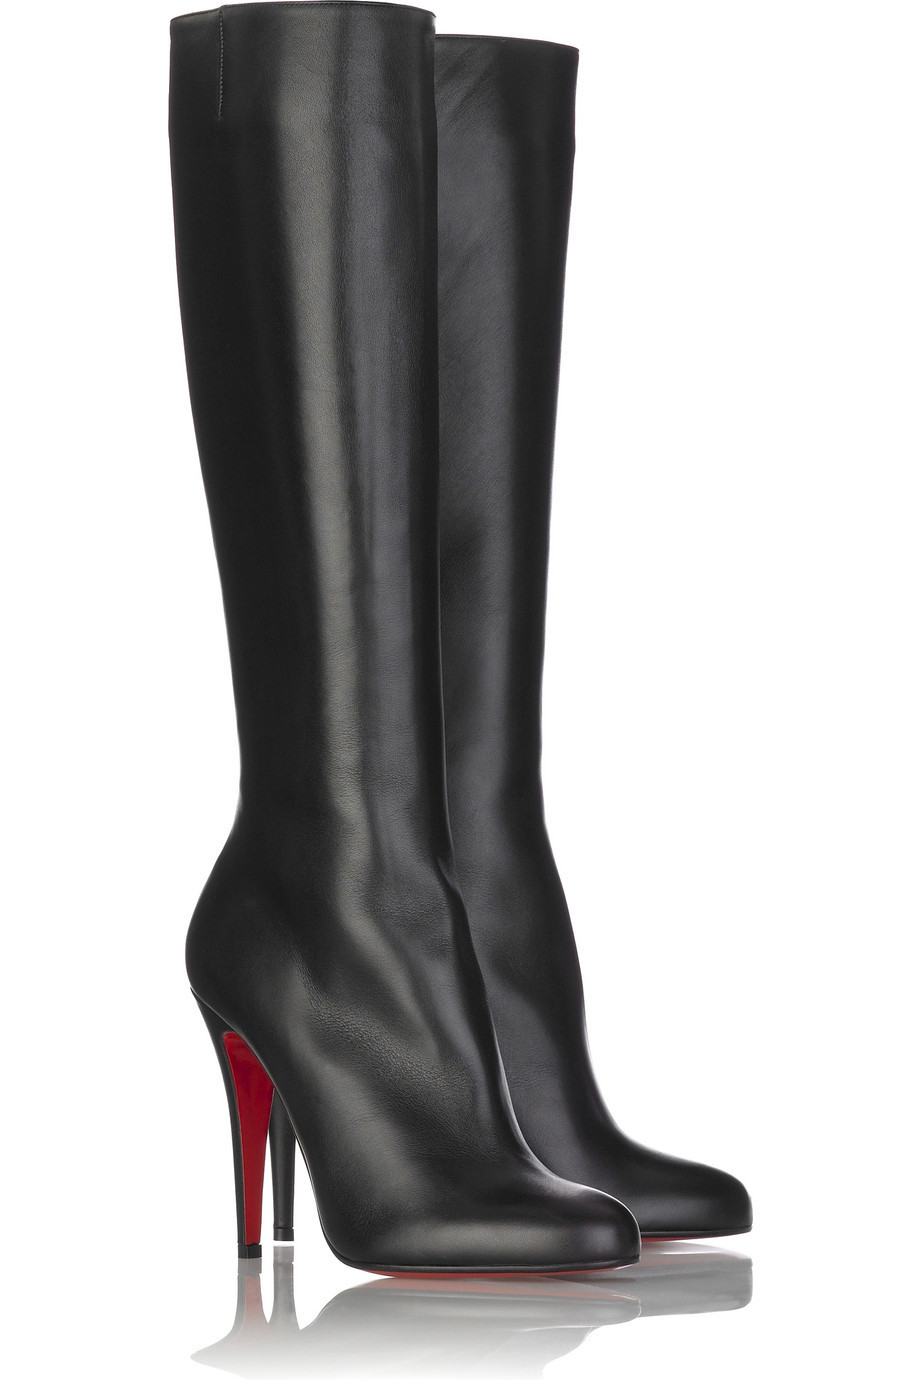 christian louboutin babel suede boots elsoc